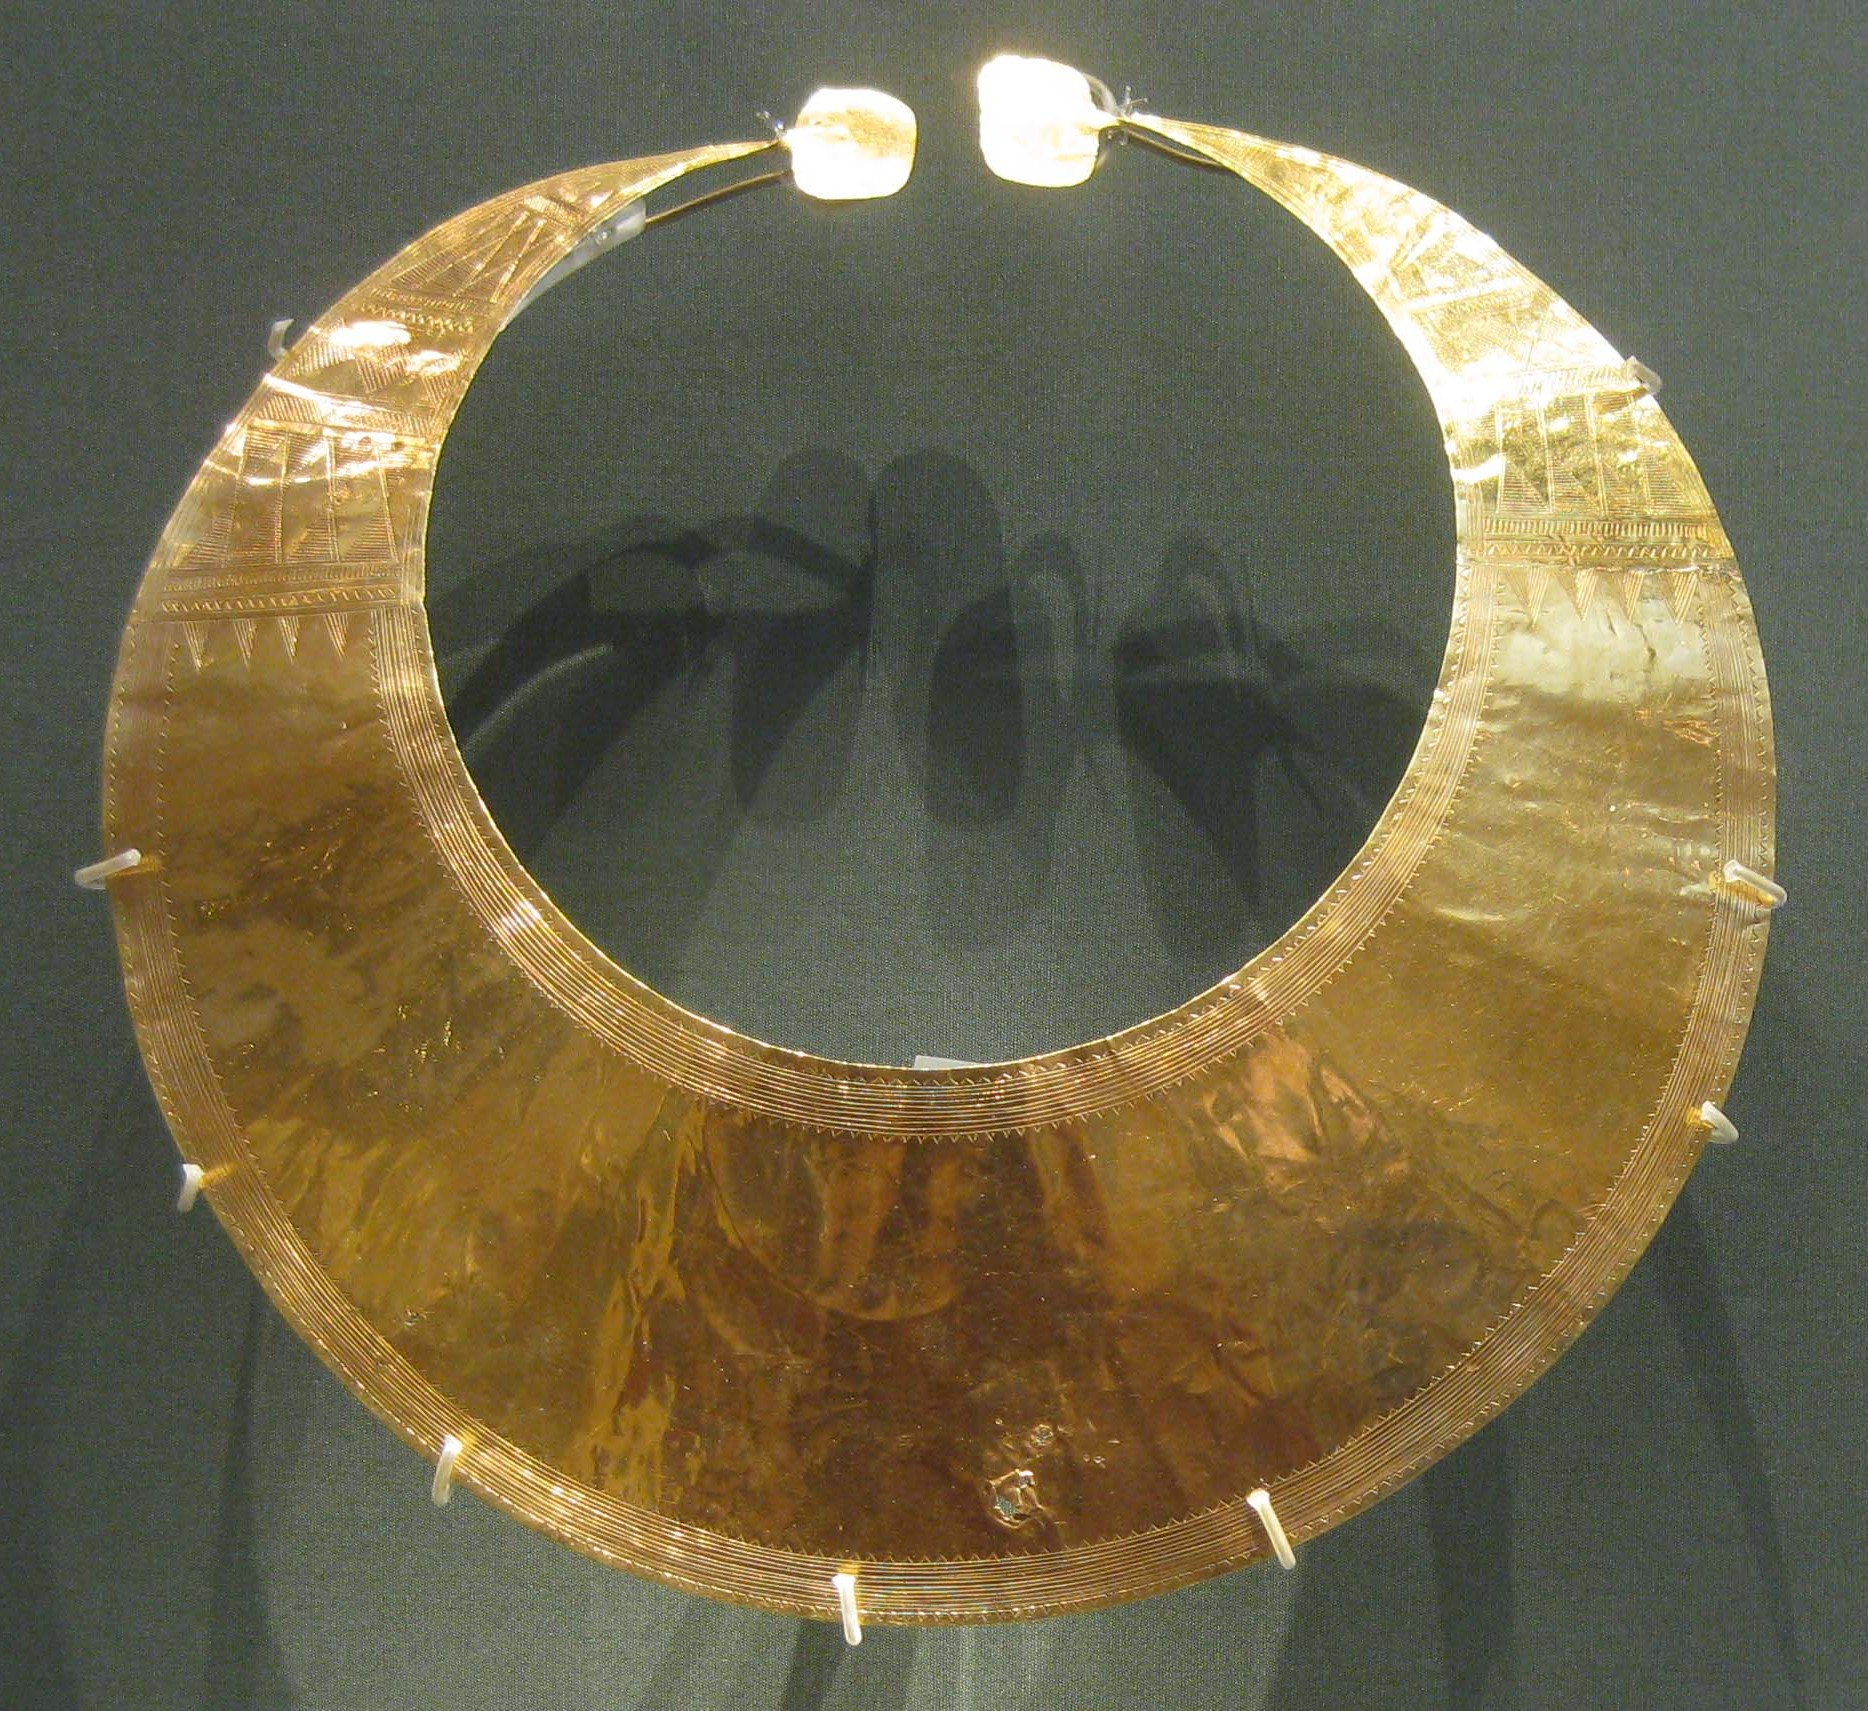 a1d193bc93 Gold working in the Bronze Age British Isles - Wikipedia